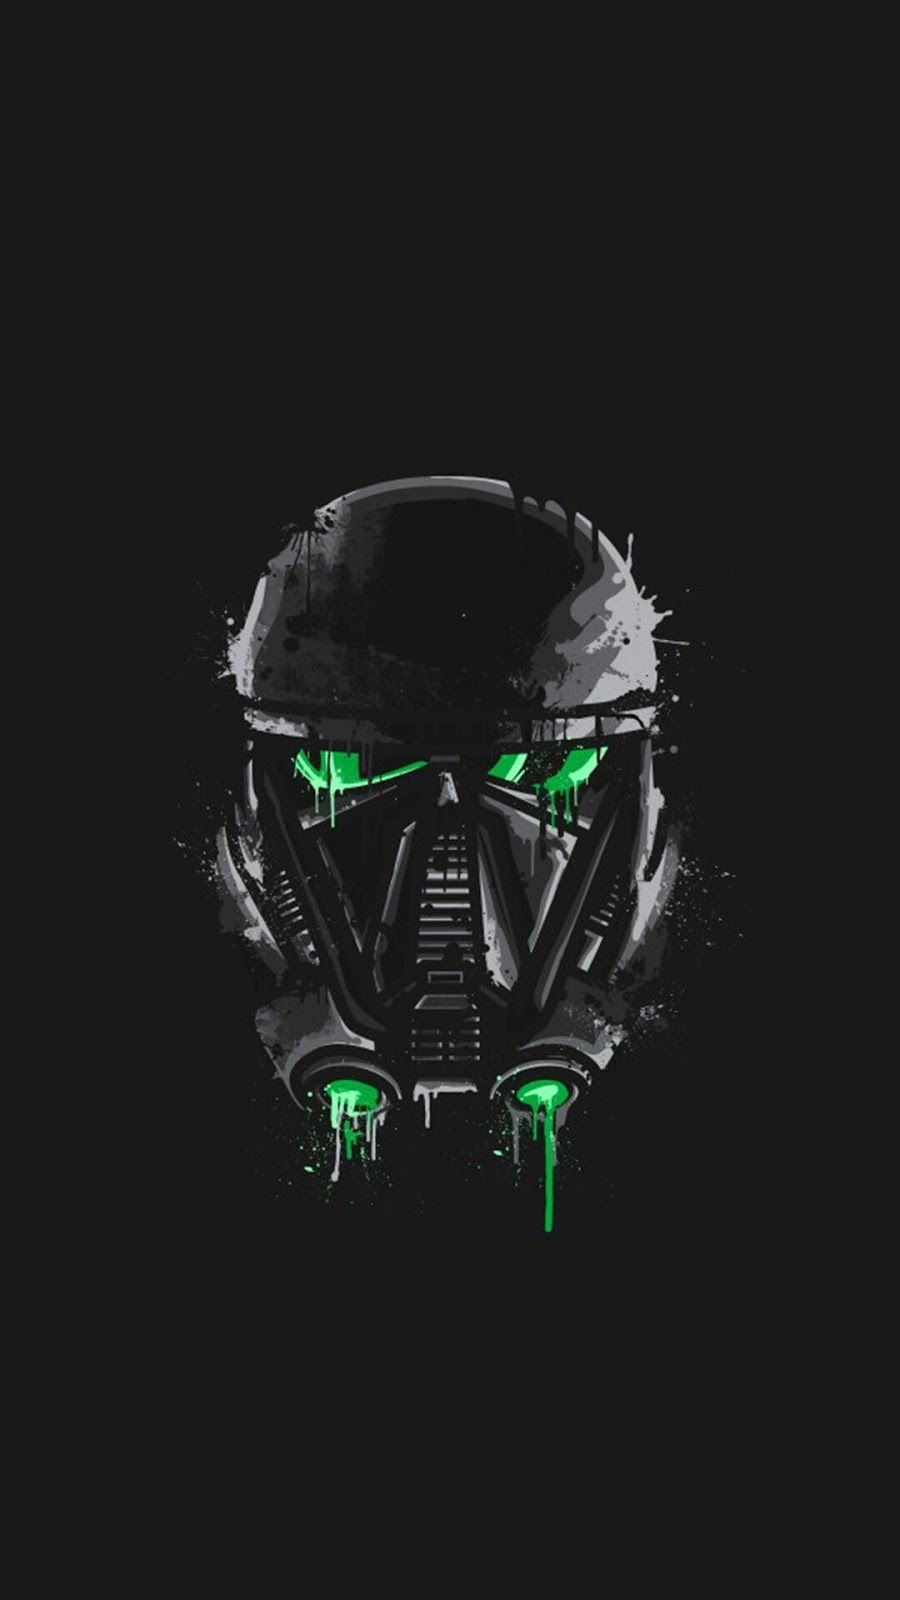 Best 200 Wallpapers For Android And Ios Star Wars Wallpaper Star Wars Wallpaper Iphone Star Wars Pictures